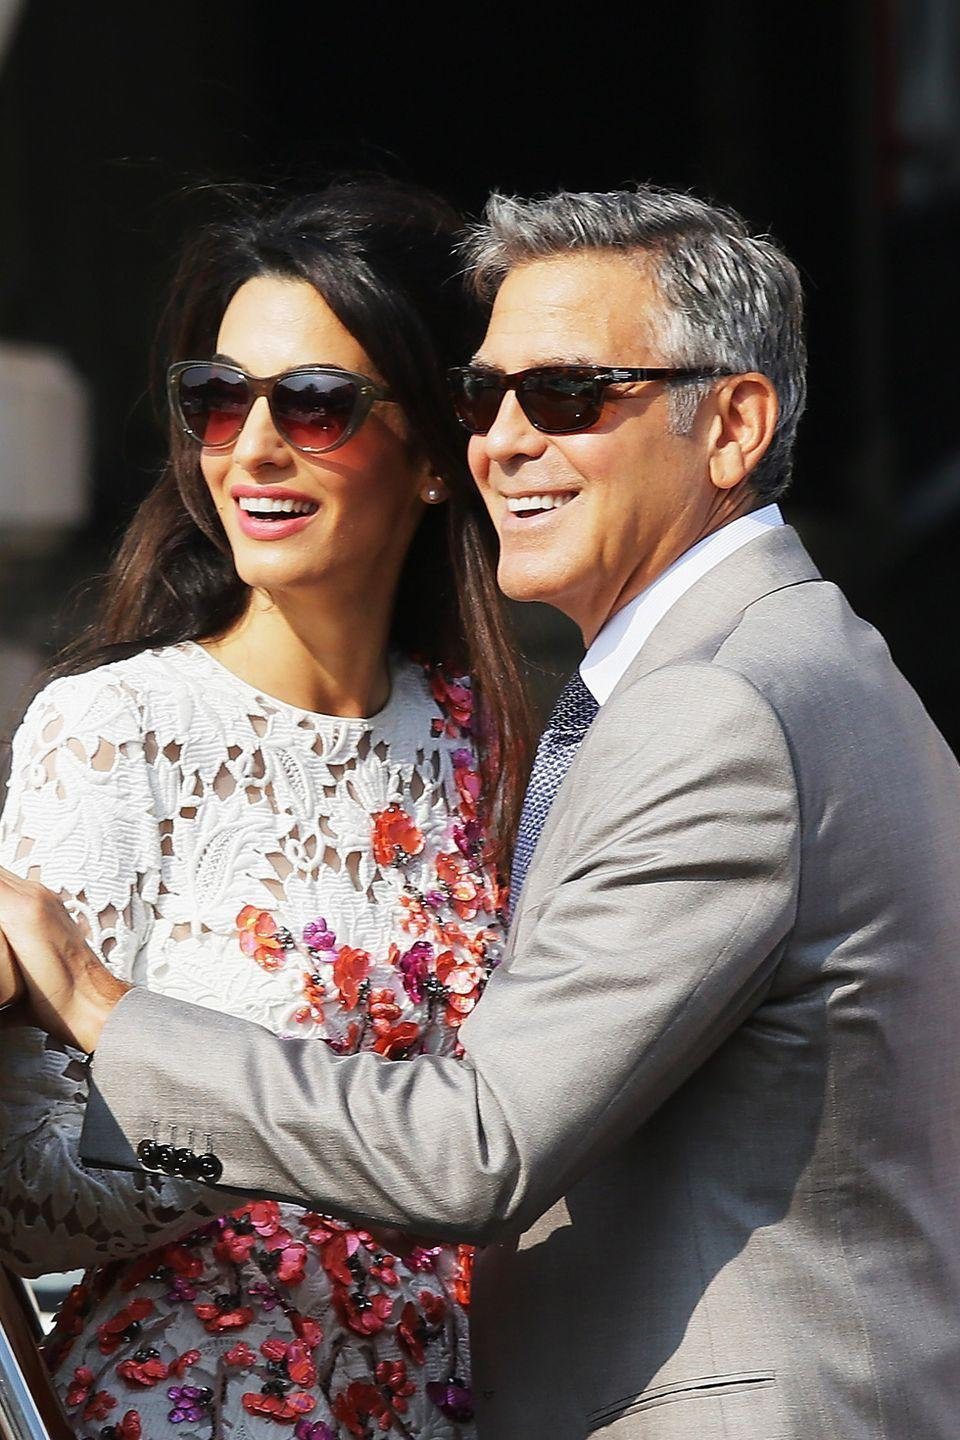 "<p>Amal's fears of becoming a <a class=""link rapid-noclick-resp"" href=""https://www.womenshealthmag.com/relationships/a21234538/amal-clooney-george-clooney-speech-afi/"" rel=""nofollow noopener"" target=""_blank"" data-ylk=""slk:""spinster"""">""spinster""</a> didn't come true when George proposed over a candlelit, champagne dinner after six months of dating in 2014. They were married in September 2014 in Venice, Italy, <a class=""link rapid-noclick-resp"" href=""https://www.townandcountrymag.com/style/a20241776/george-clooney-amal-clooney-love-marriage-story/"" rel=""nofollow noopener"" target=""_blank"" data-ylk=""slk:Town & Country""><em>Town & Country</em></a> details; the couple welcomed twins together, Ella and Alexander, in 2017. Their status? Still going strong.</p>"